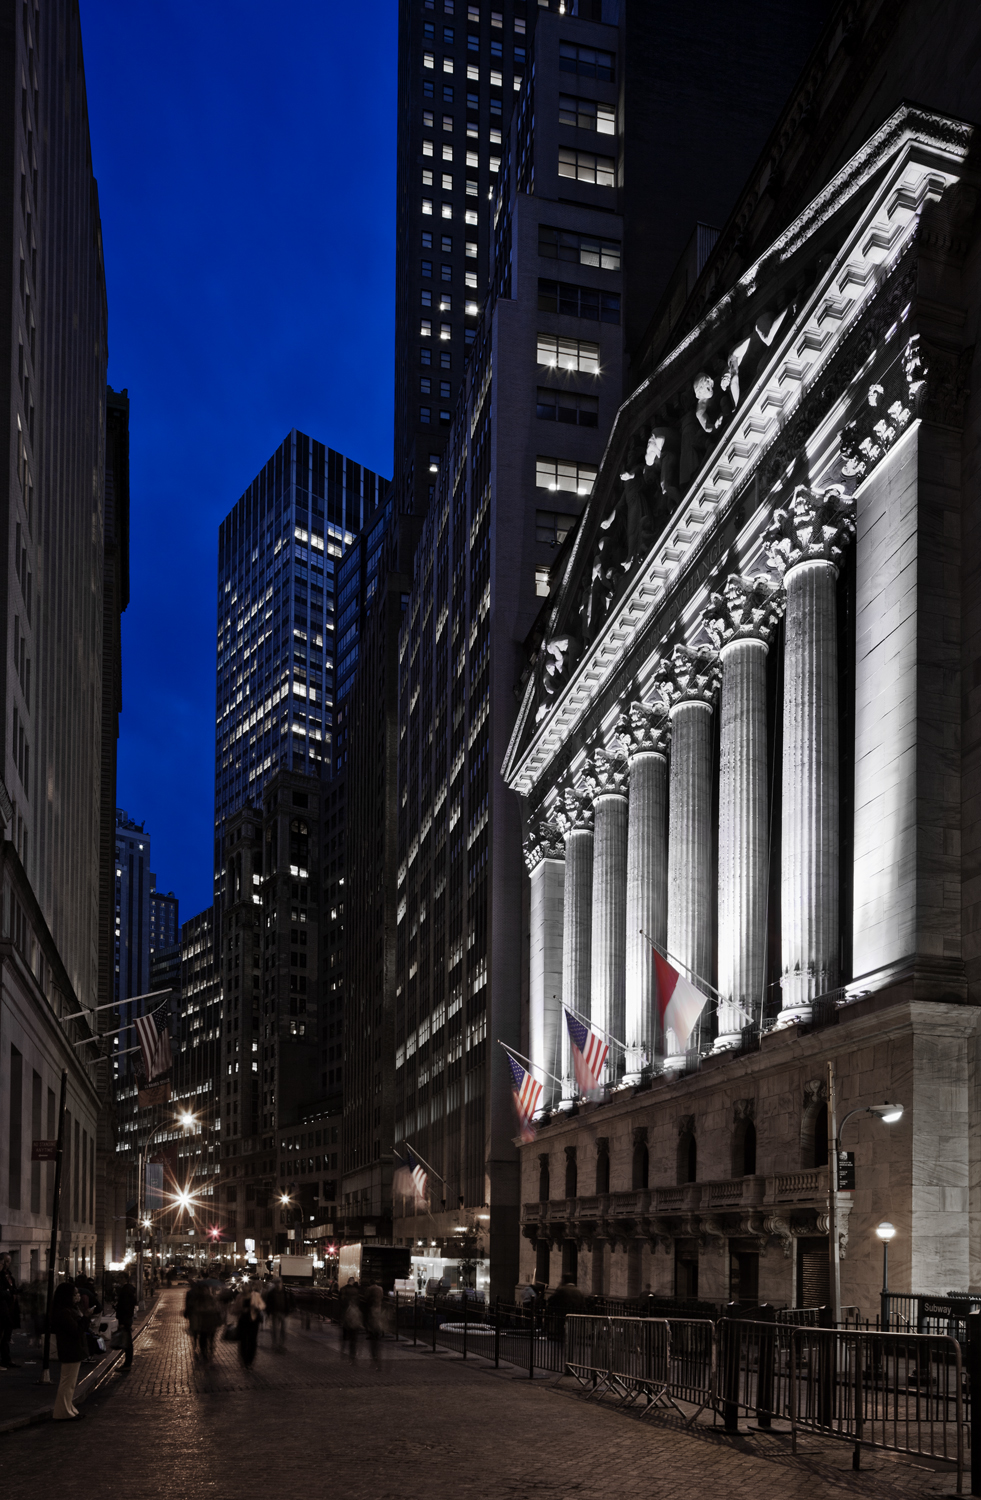 The New York Stock Exchange ©Davidsohn global tecnologies